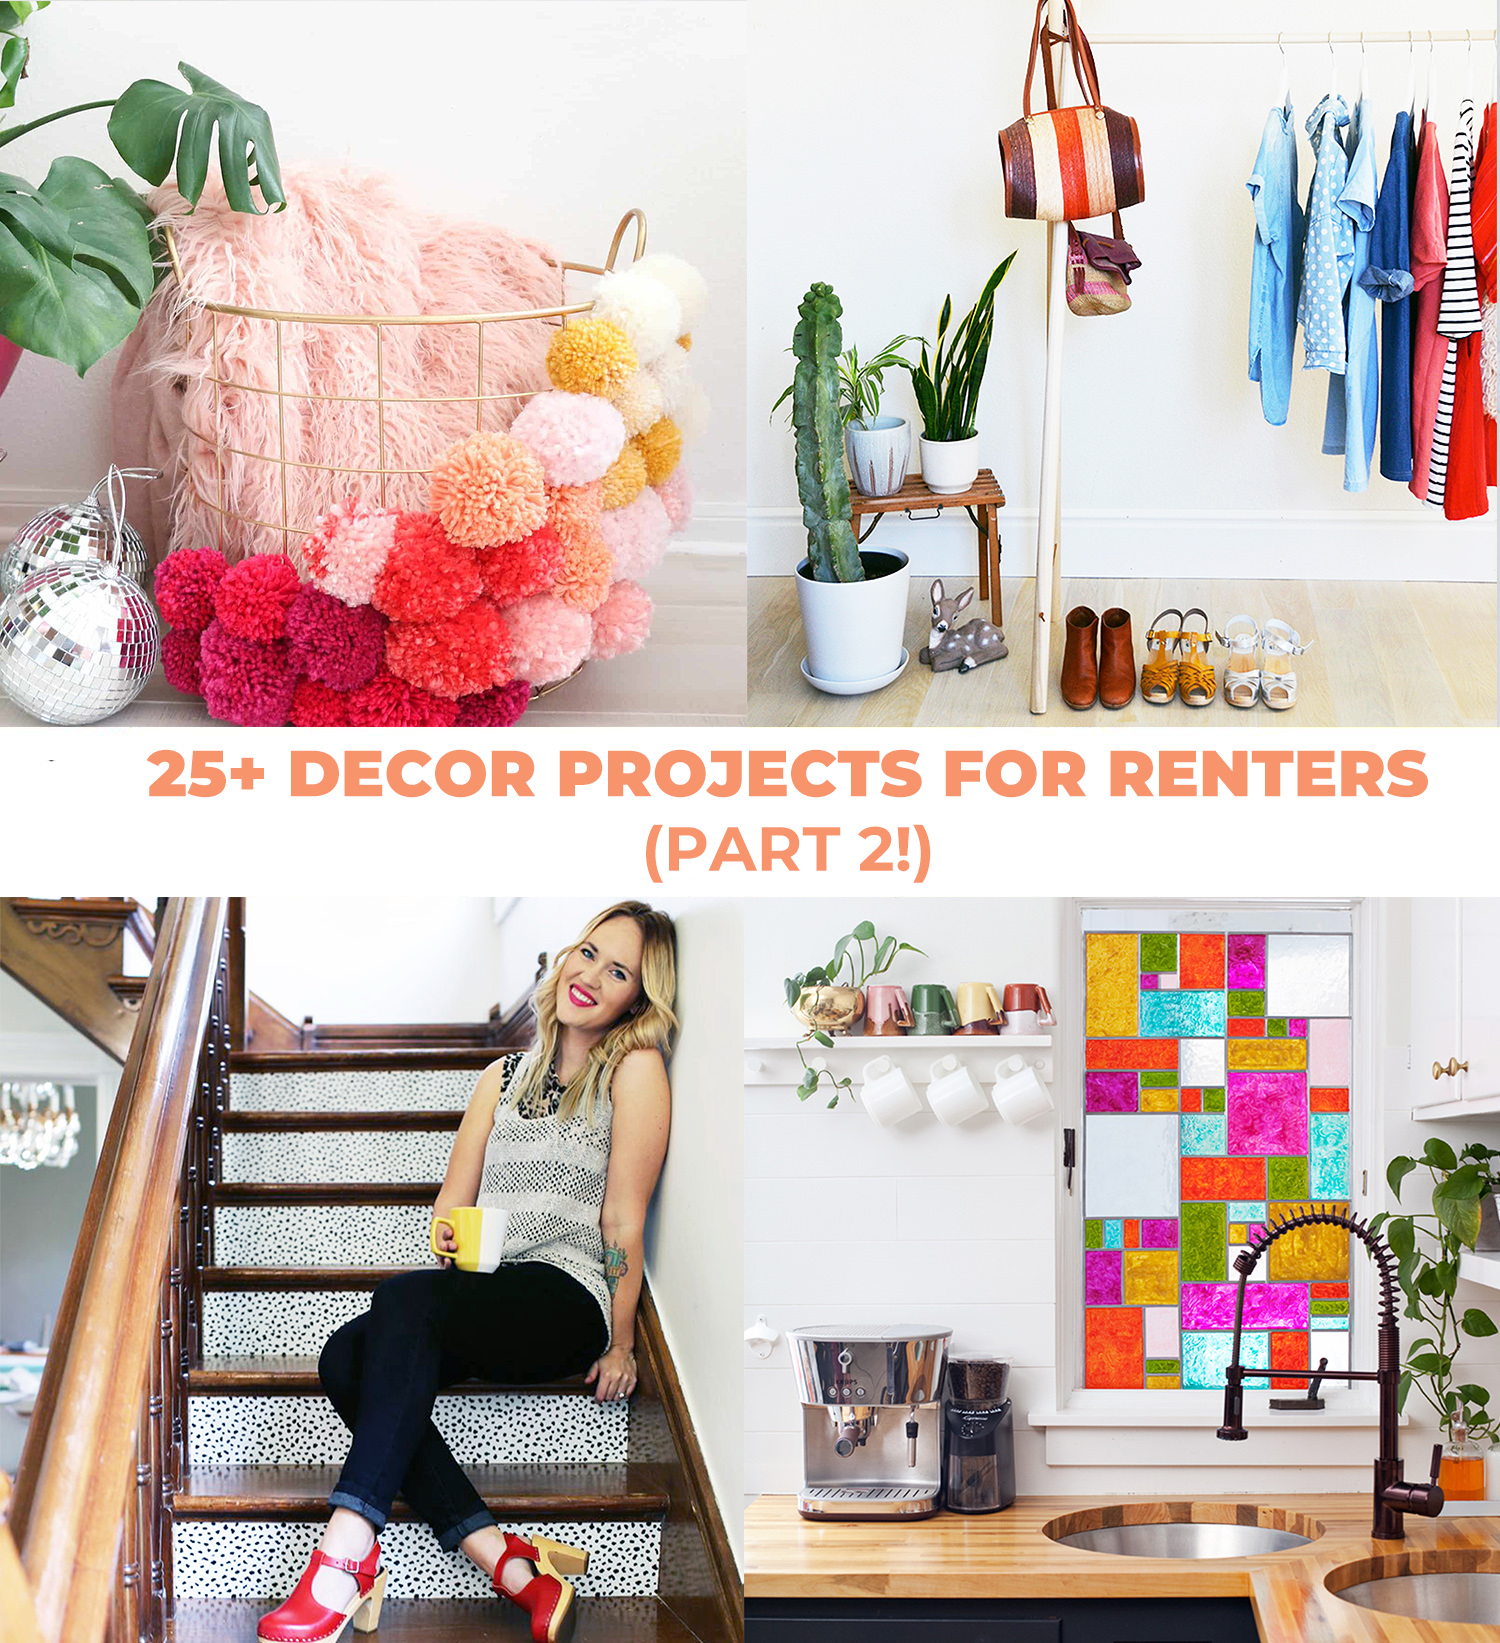 25+ Decor Projects for Renters (Part 2)